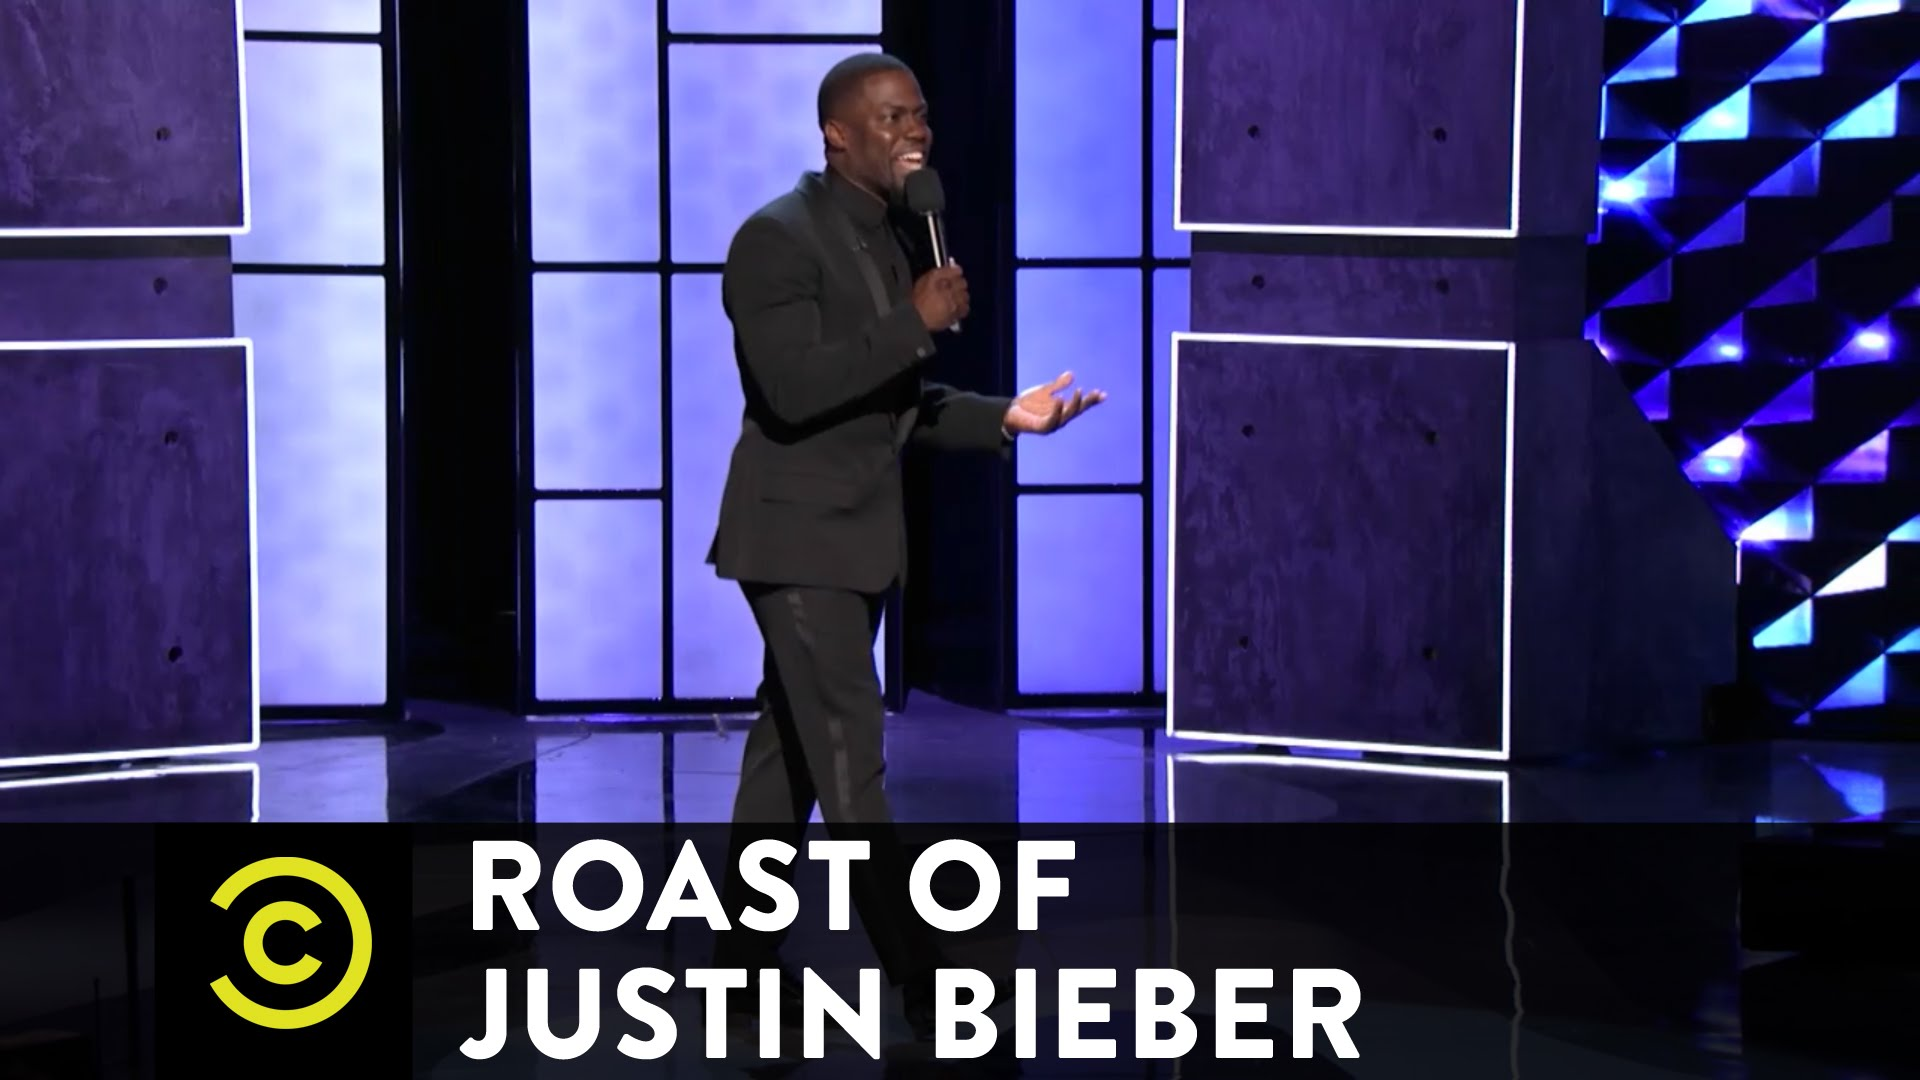 Justin Bieber Gets Roasted (Trailer)